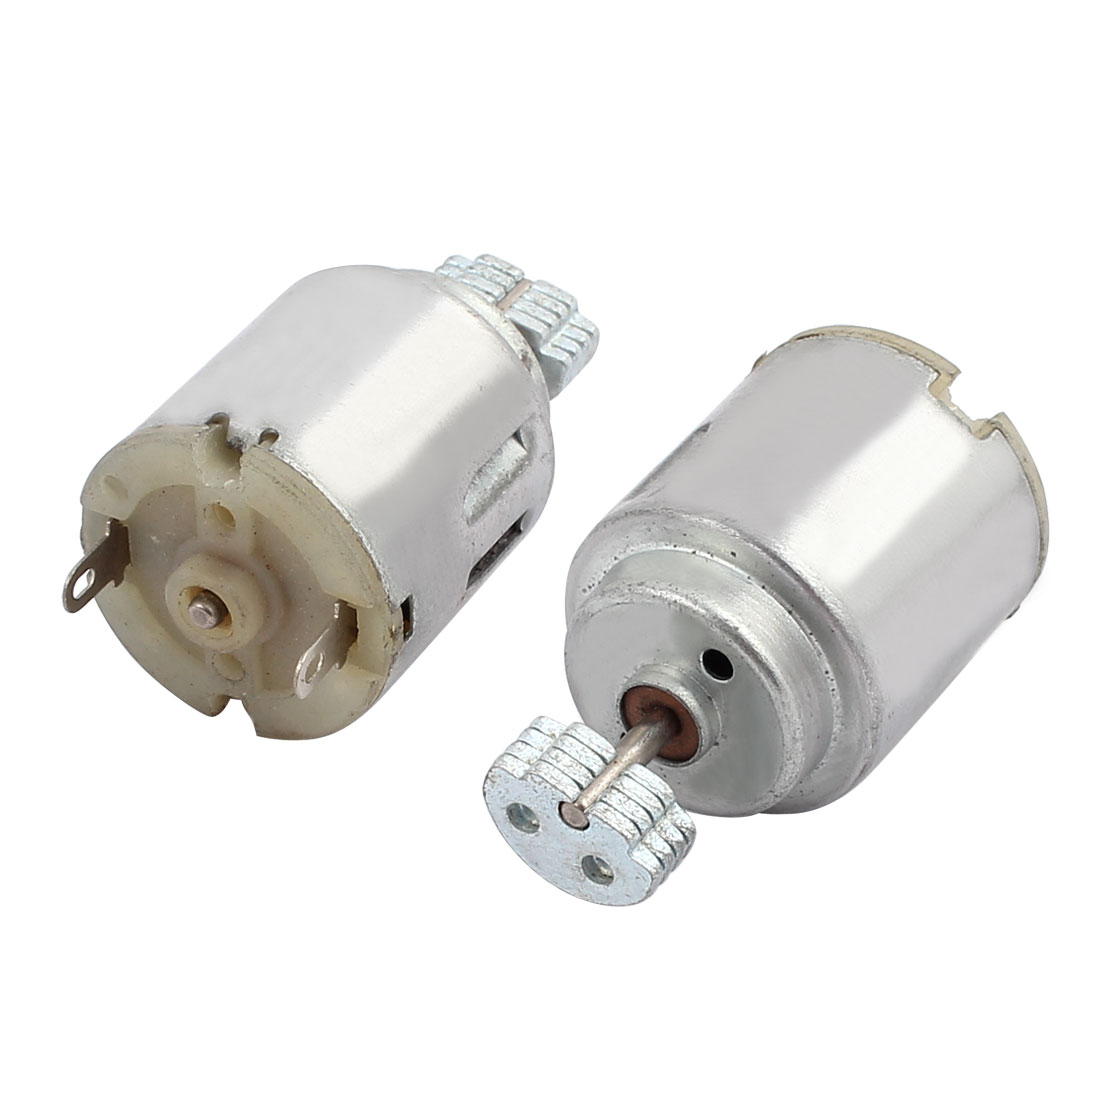 2Pcs DC3V-4.5V 12500RPM Rotary Speed Electric Vibration Motor for DIY Model Toy